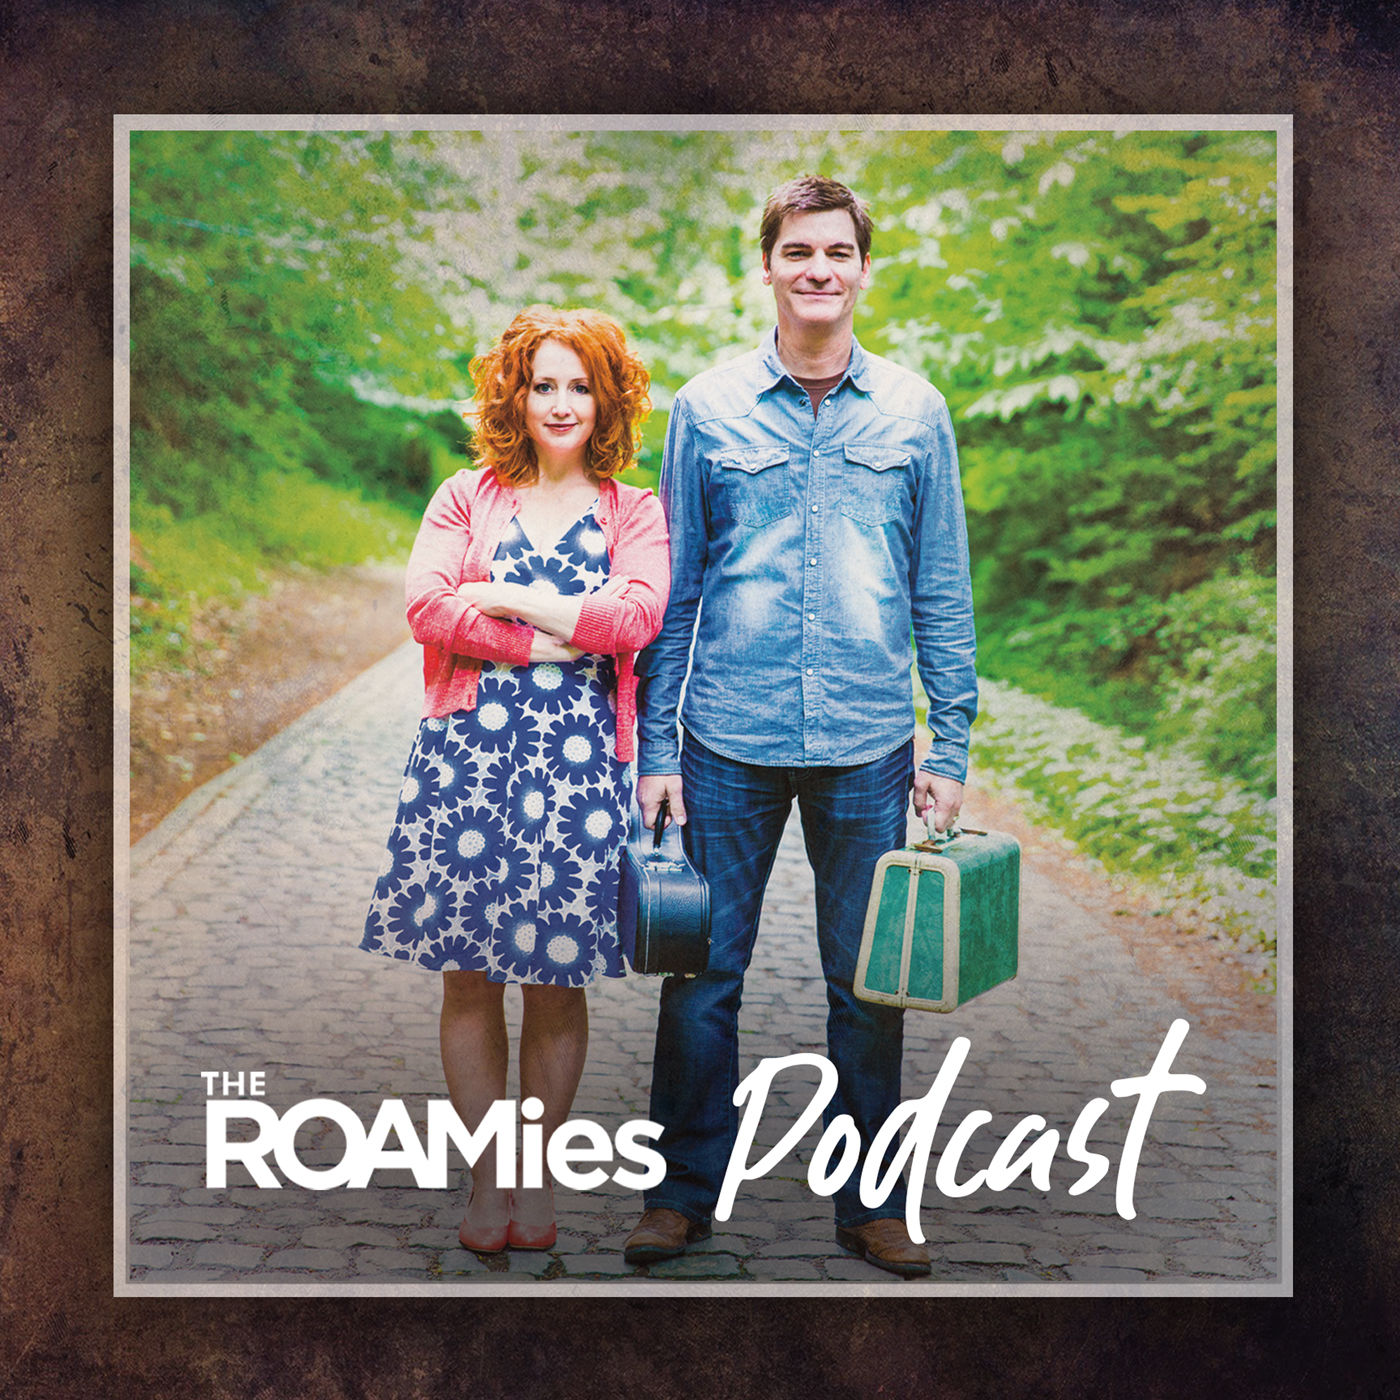 The ROAMies Inaugural Podcast Live Event - Part 1 of 2 Los Angeles Walking Bucket List